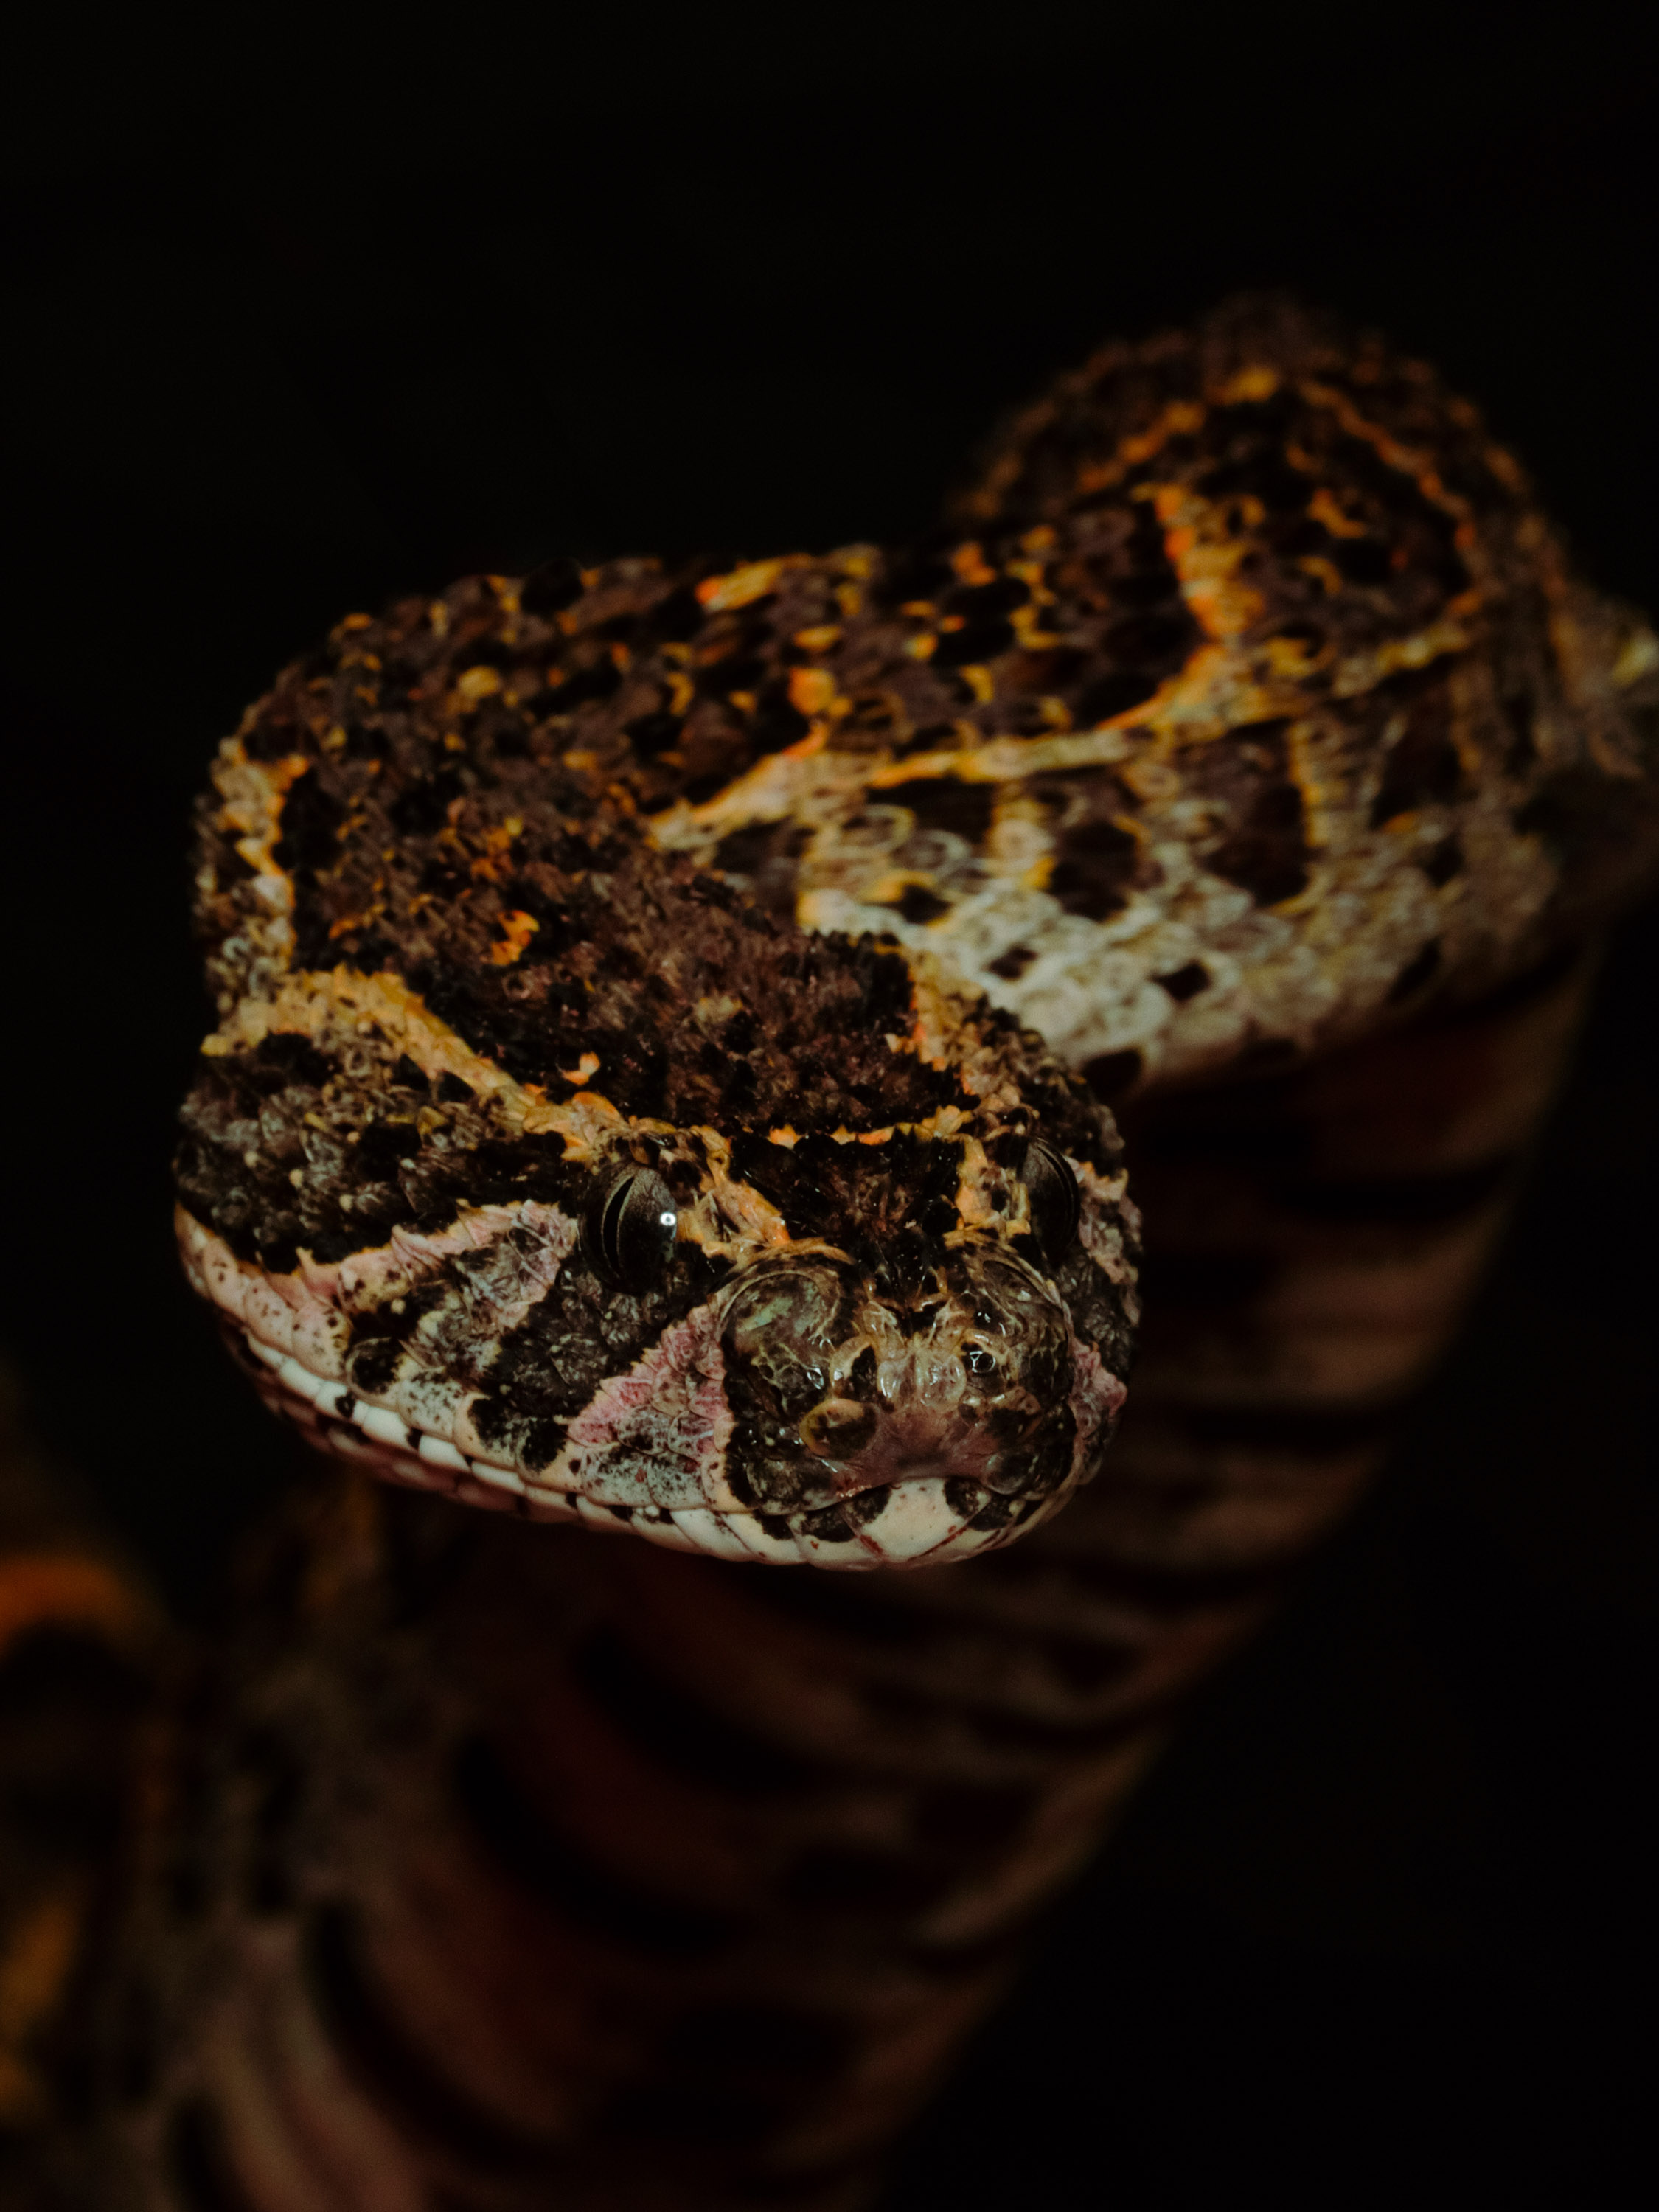 African Puff Adder. This species causes a large percentage of snakebites throughout Africa. Venom causes haemorrhage, vomiting and tissue necrosis.